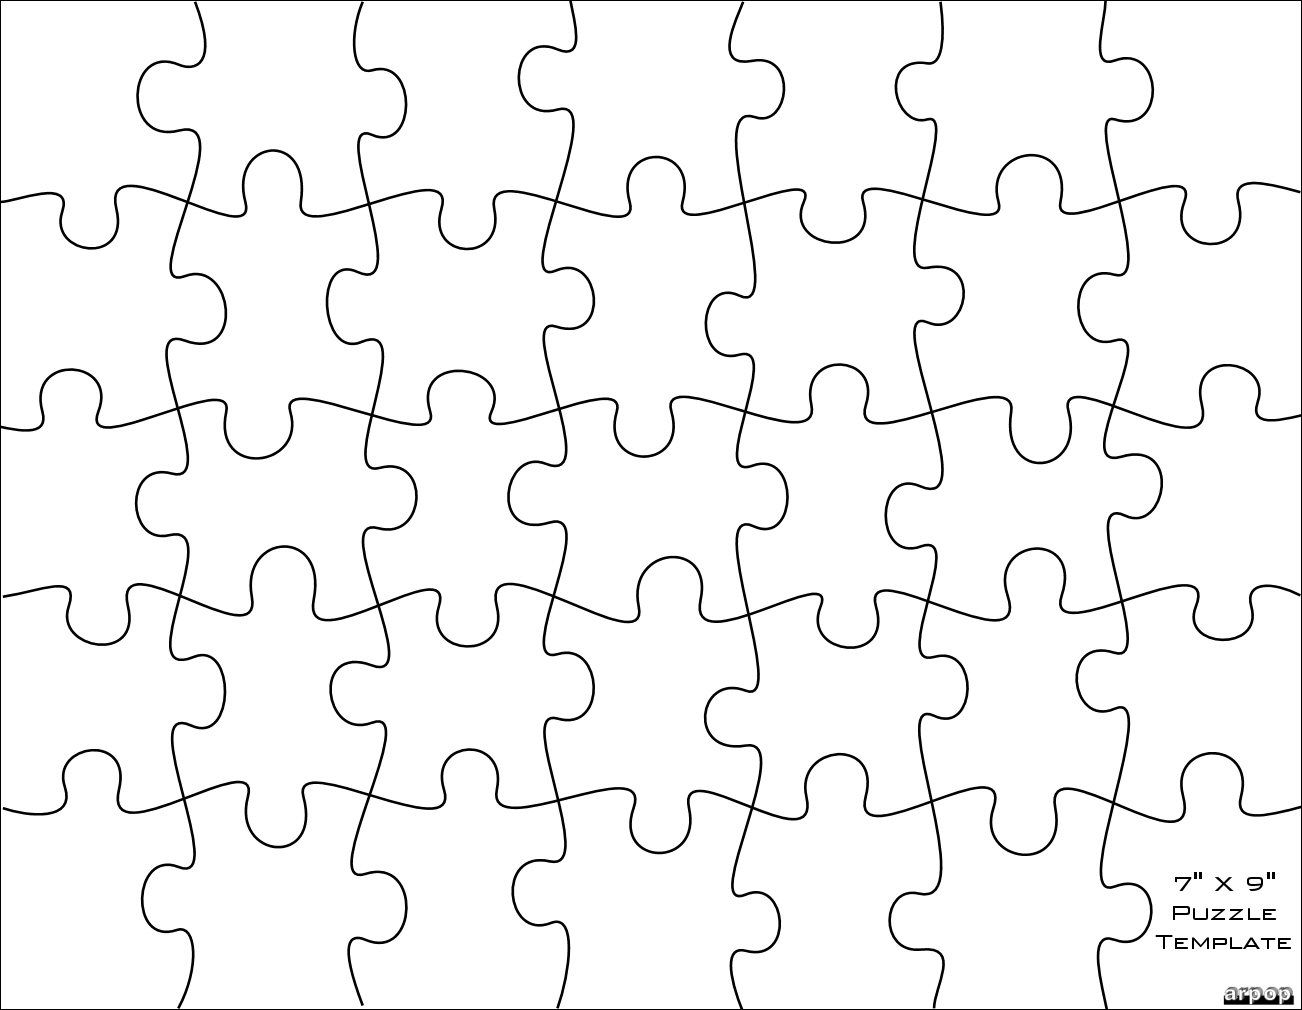 jigsaw pattern templates I know I want to use it but I dont – Blank Puzzle Template